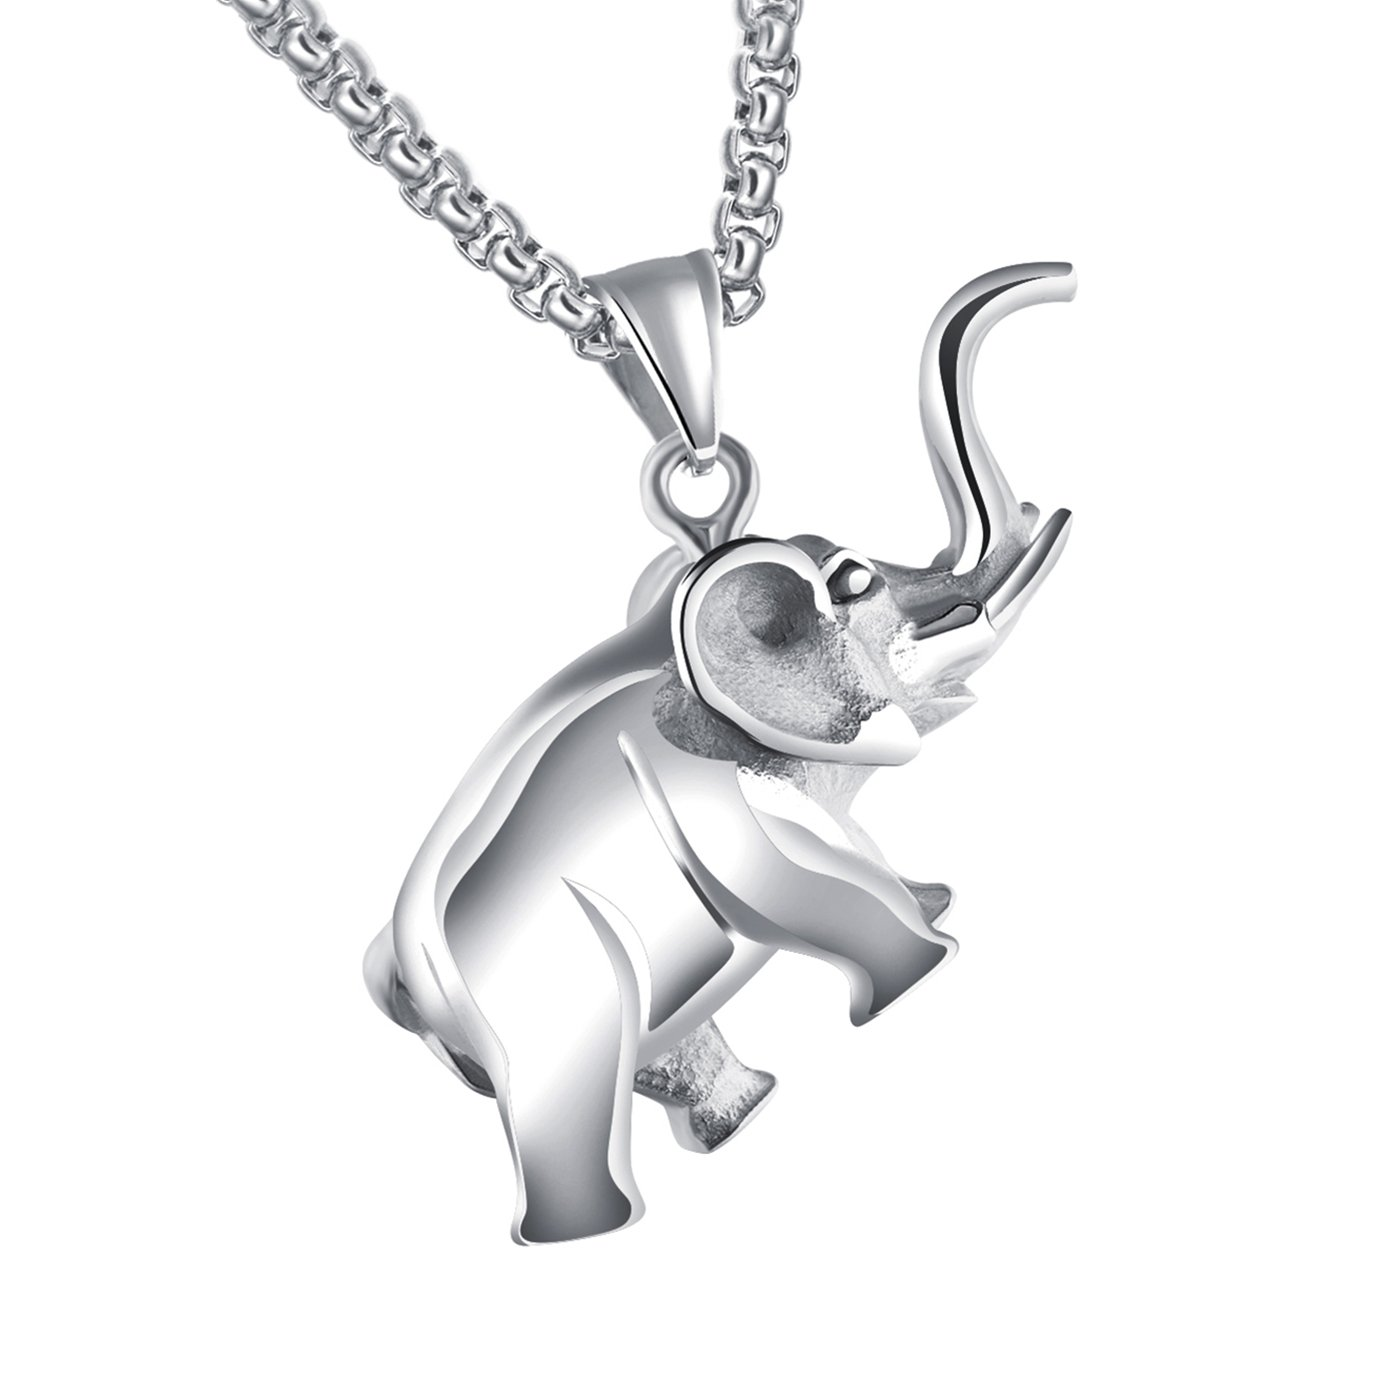 Lary Jewelry Lucky Elephant Pendant Necklace Stainless Steel Rolo Chain Animal Necklace for Men 21.65